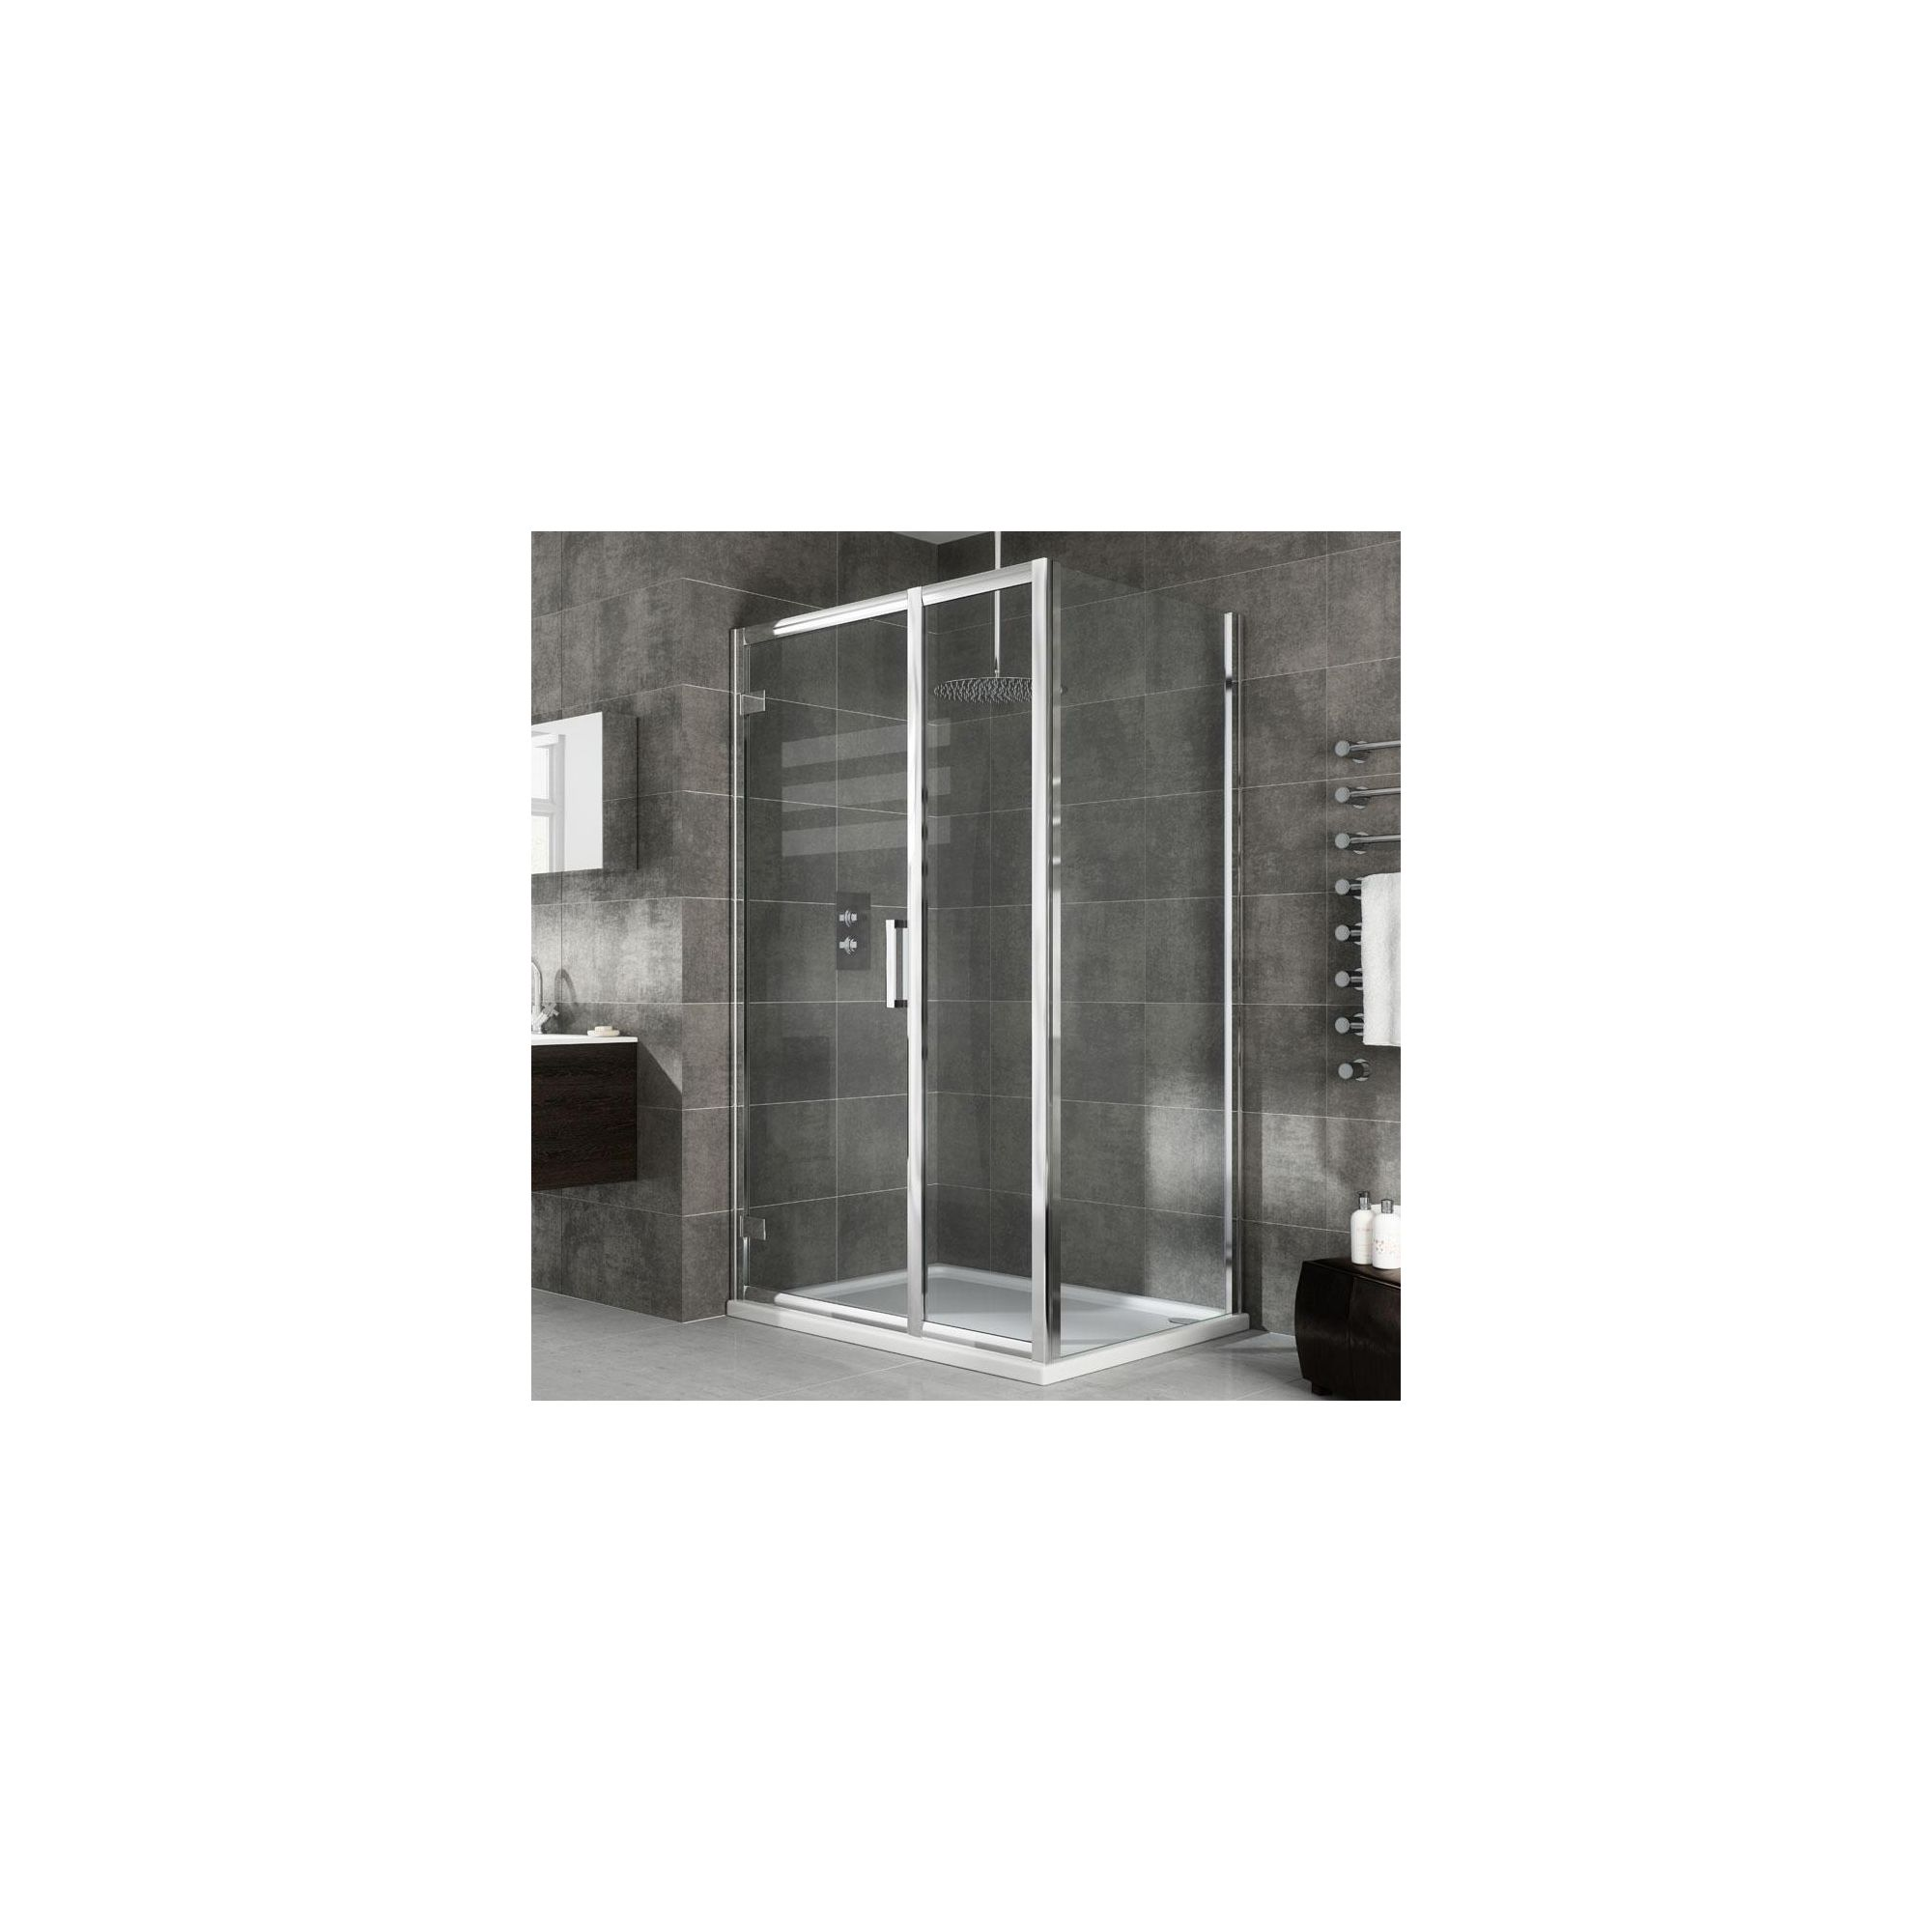 Elemis Eternity Inline Hinged Door Shower Enclosure, 1200mm x 800mm, 8mm Glass, Low Profile Tray at Tesco Direct